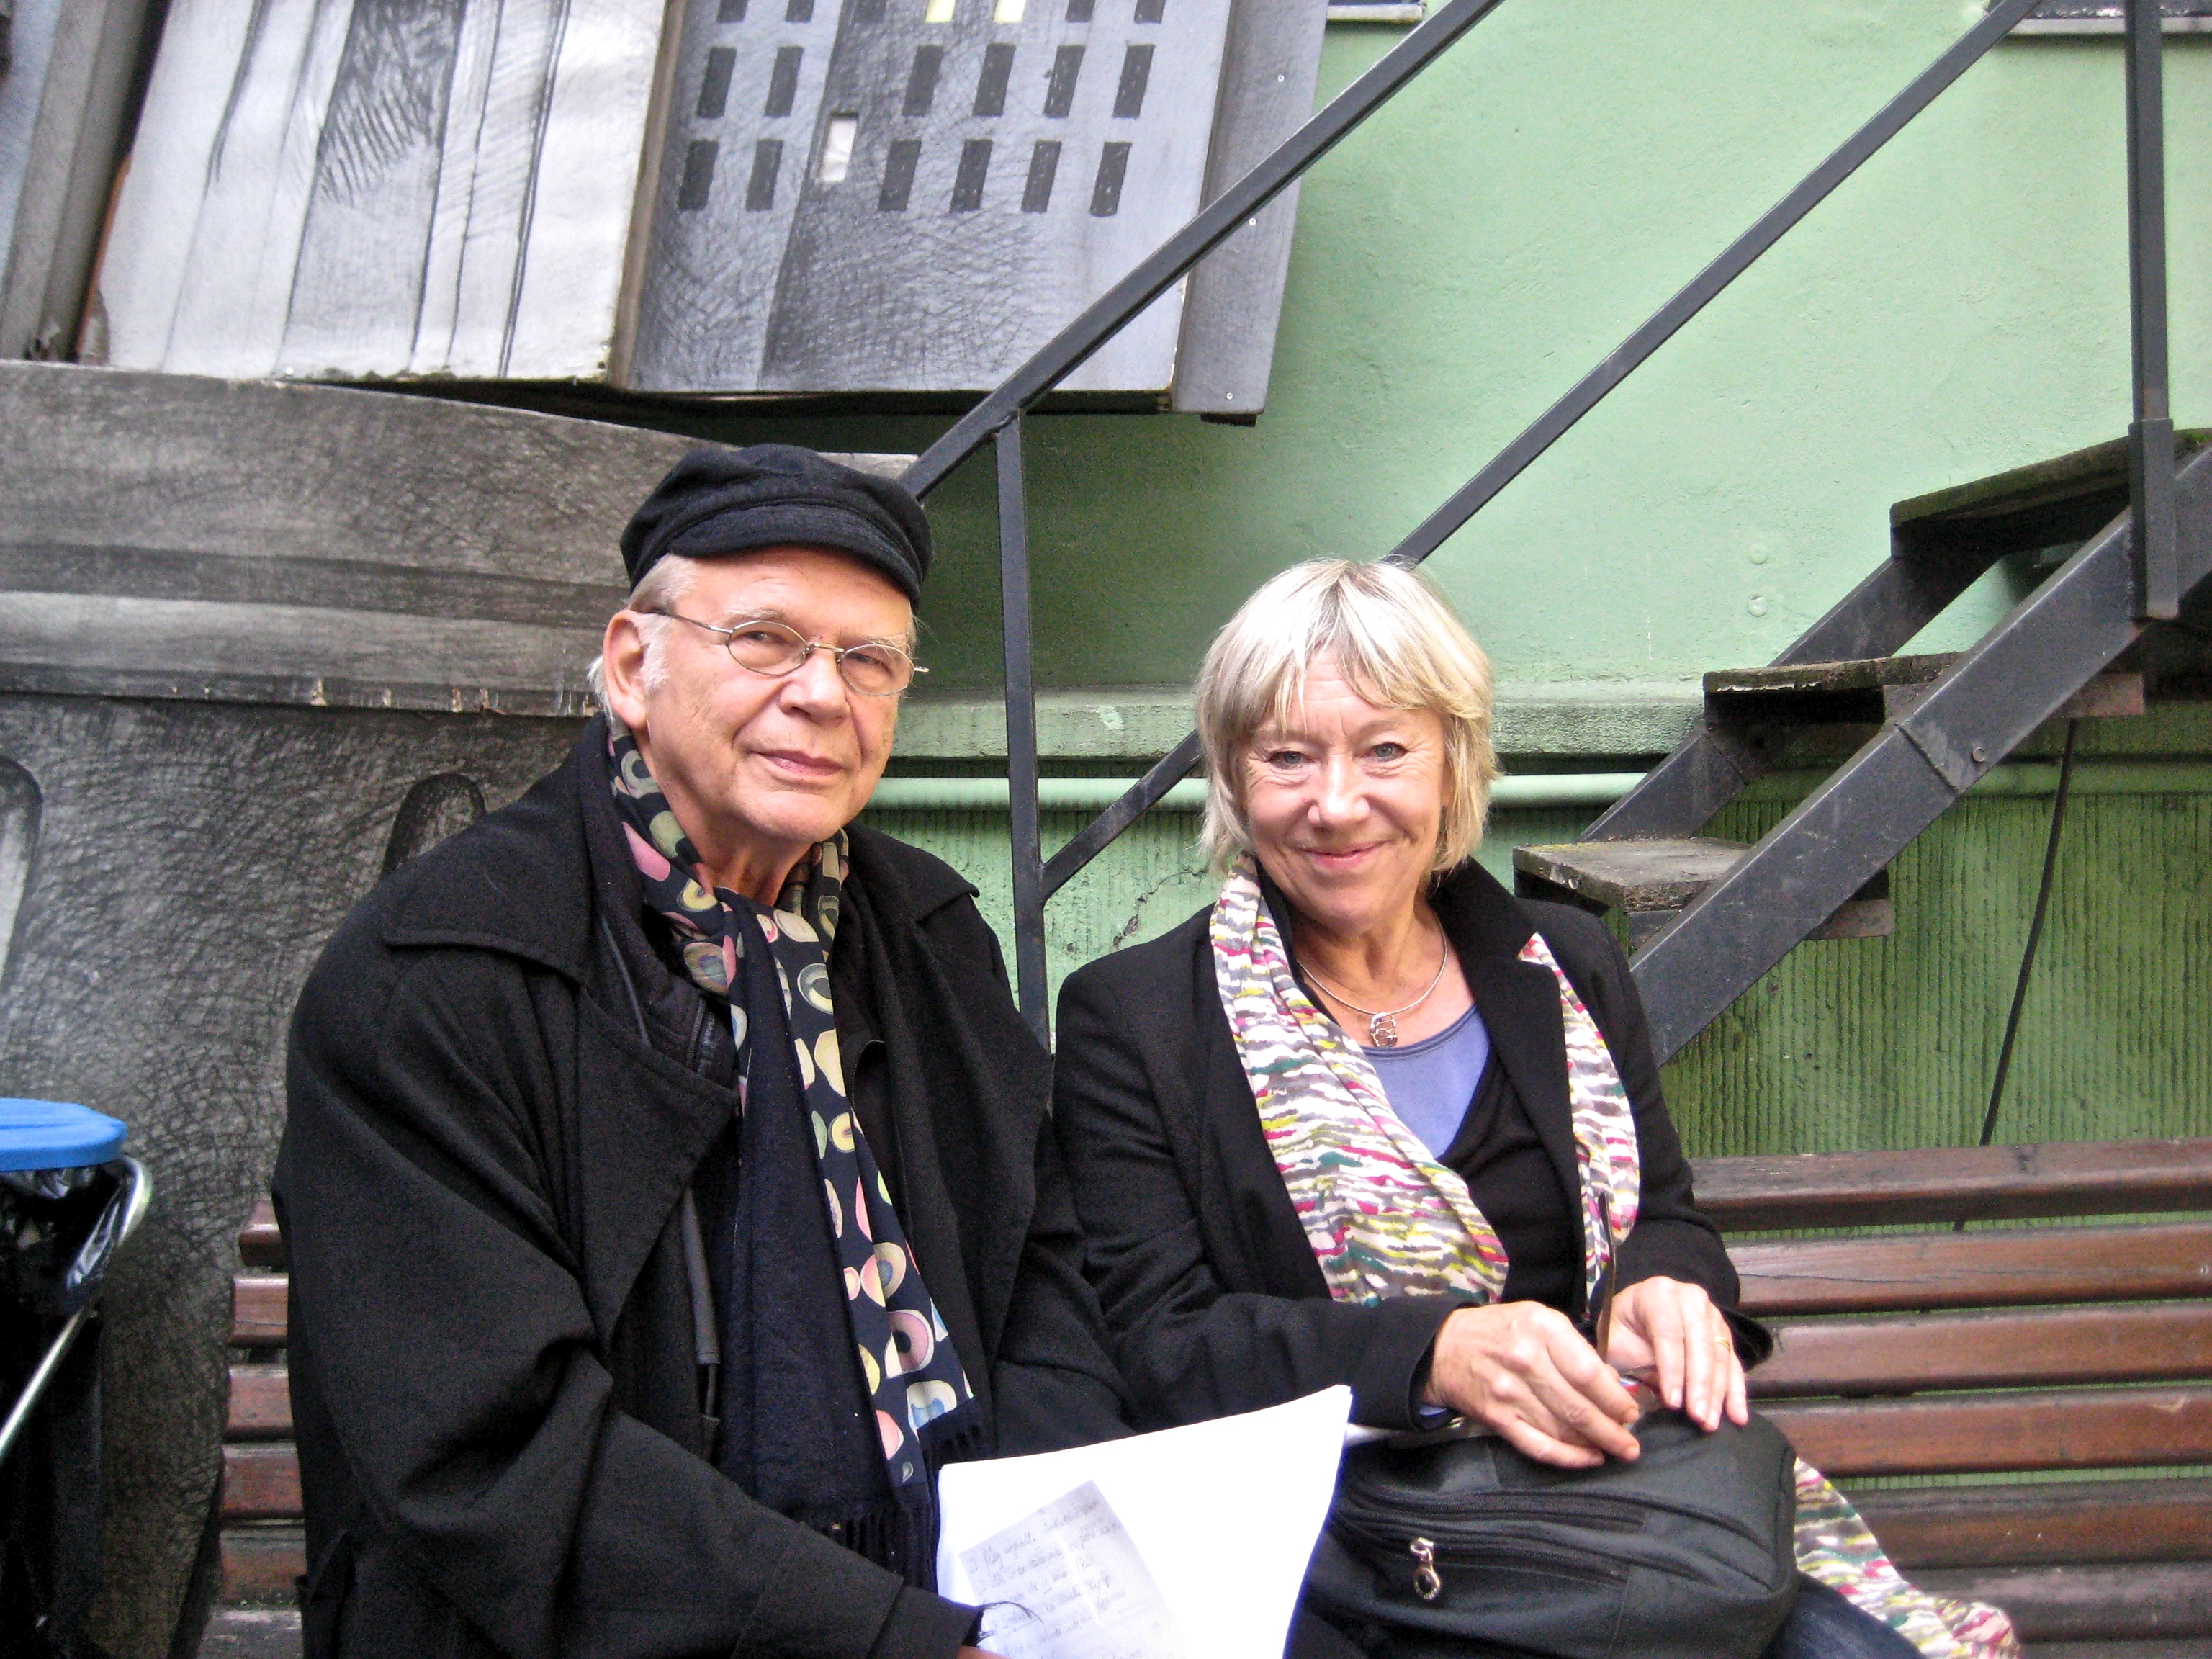 Actor Tricia Kelly with playwright Manfred Karge at the Berliner Ensemble.